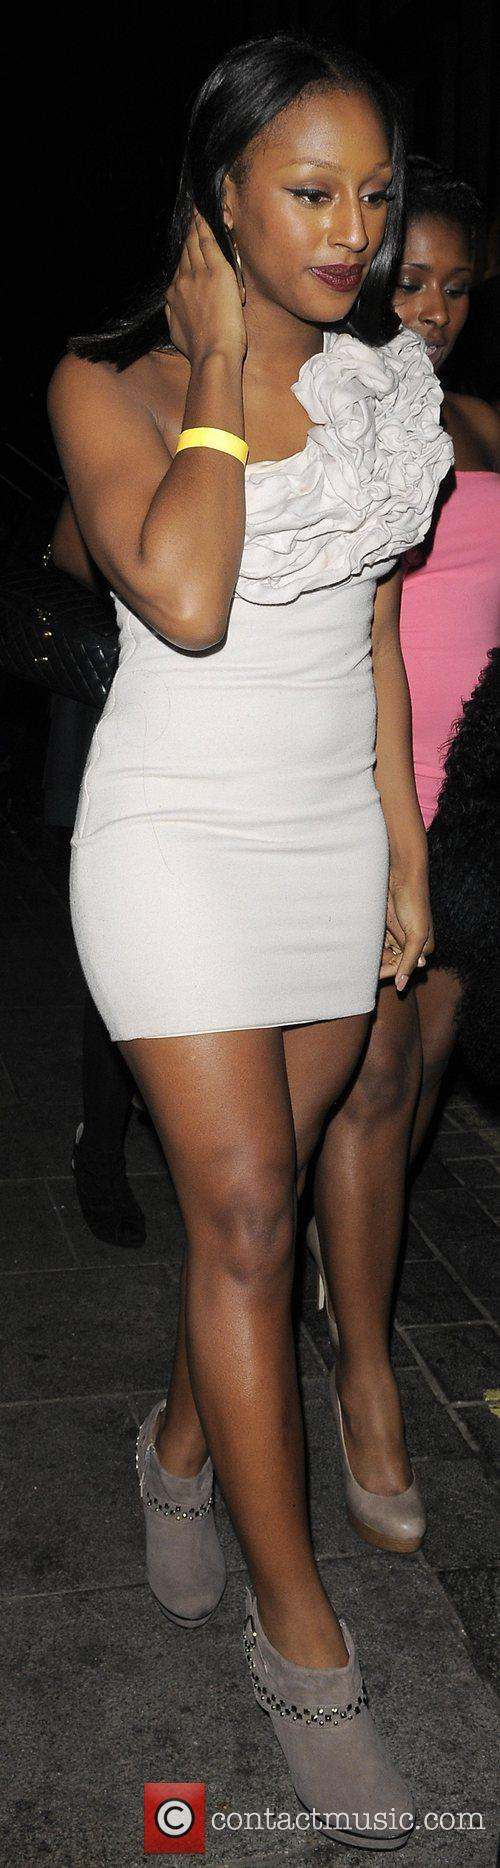 Alexandra Burke leaving Anaya nightclub in Mayfair.